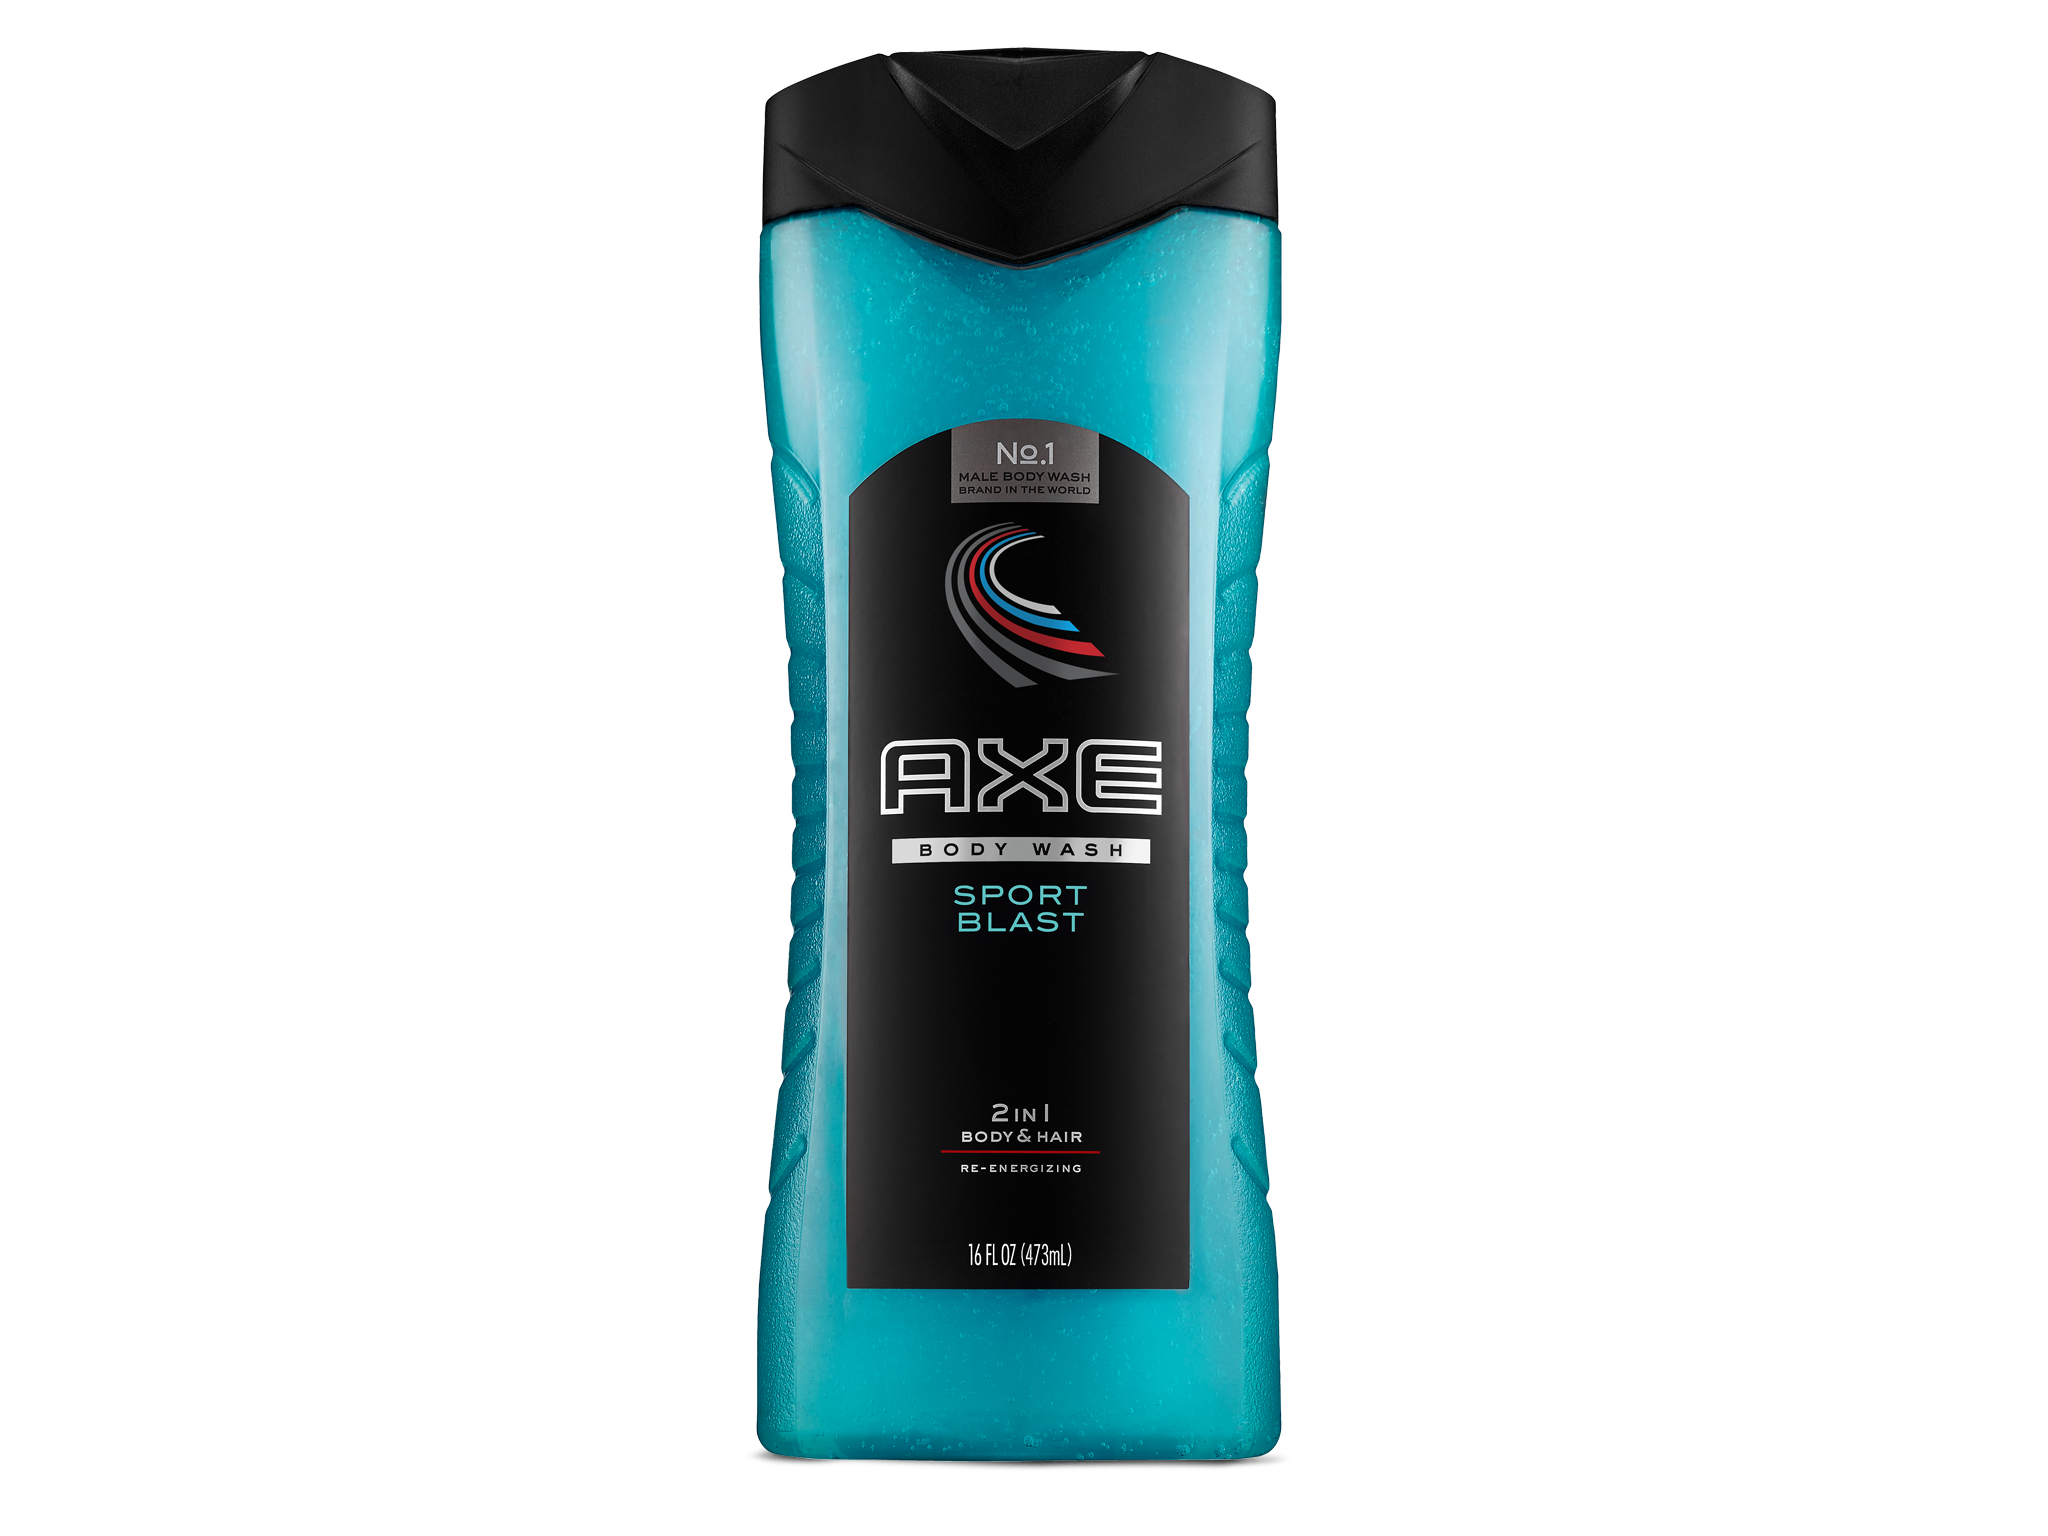 Axe: Men's Grooming, Lifestyle and Style Tips & Hacks| Axe